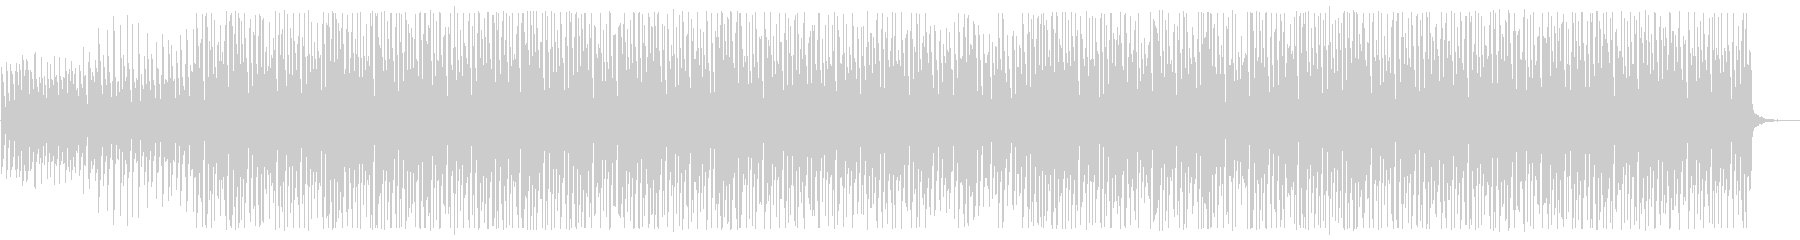 Refreshing songs for news and news programs's unreproduced waveform